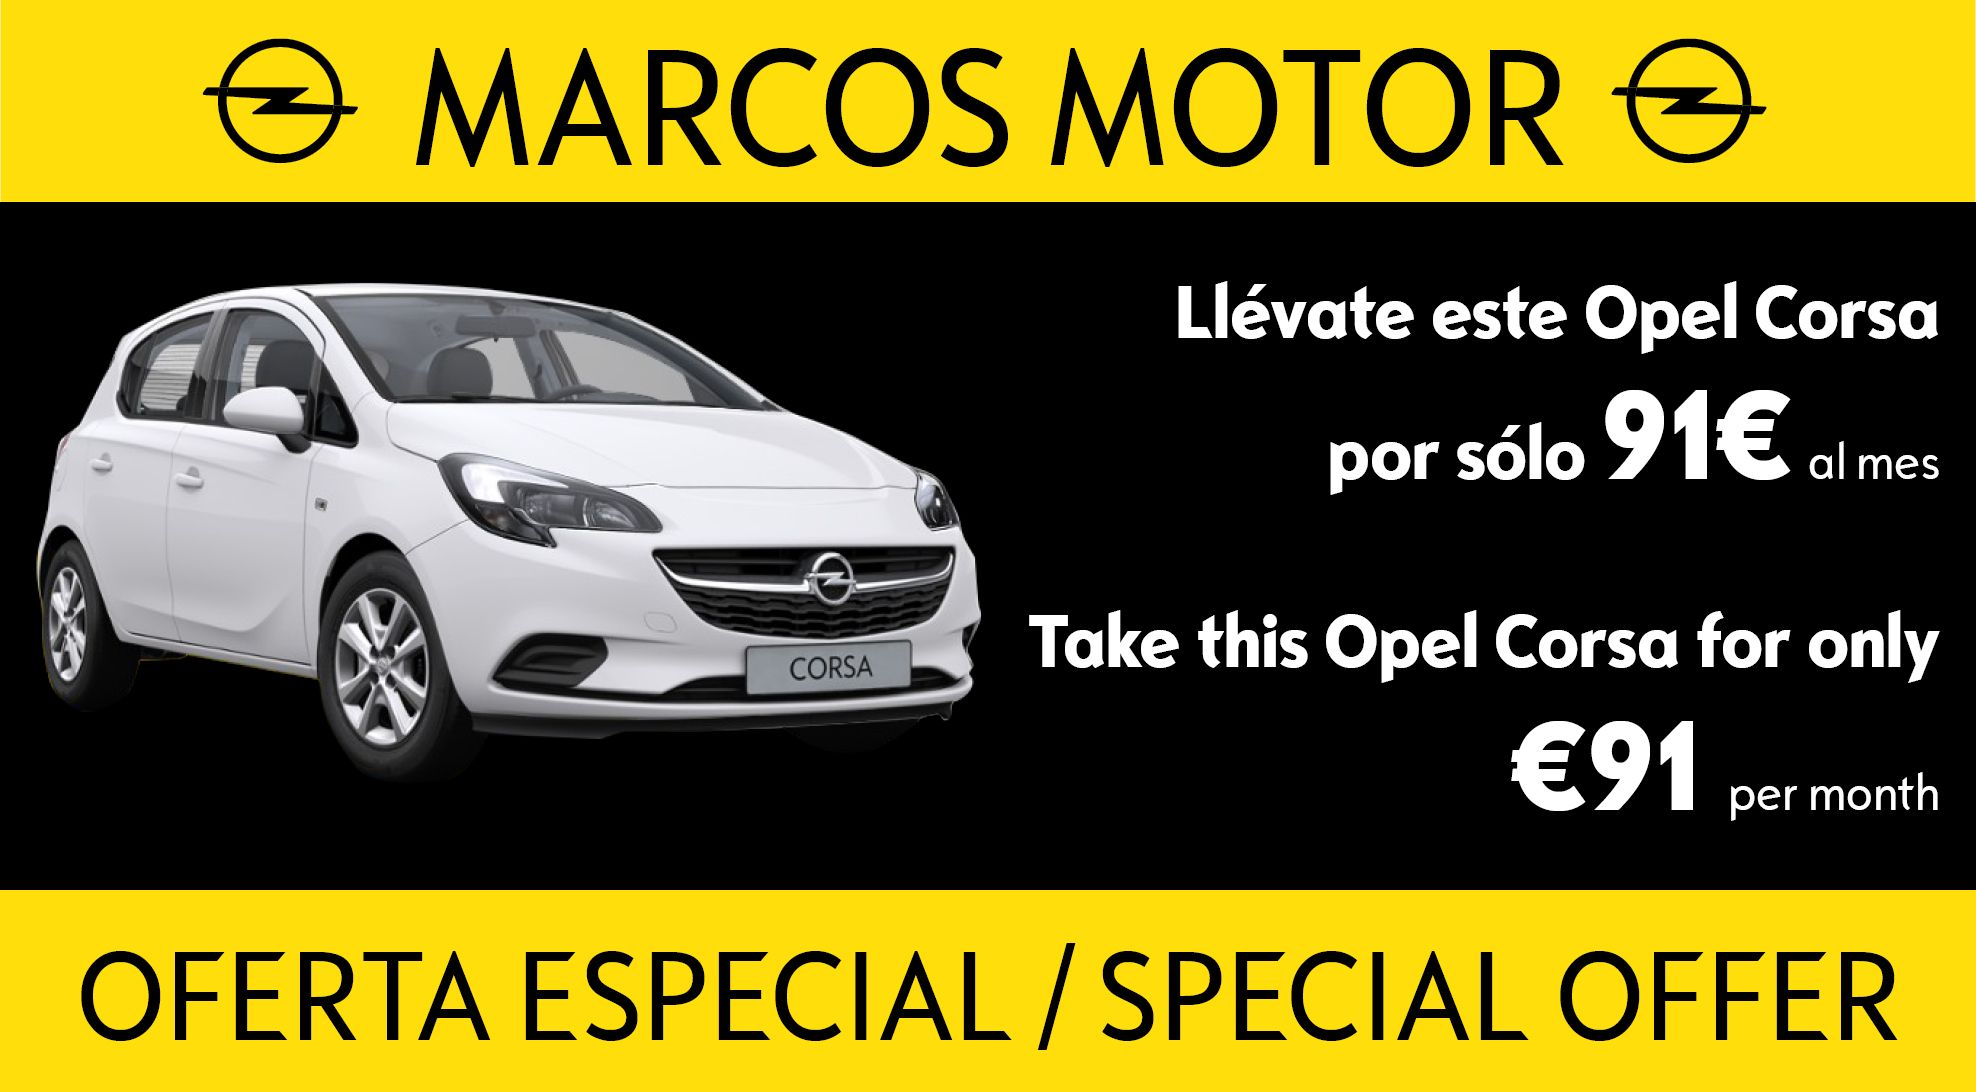 Opel Corsa Offer €91 per month